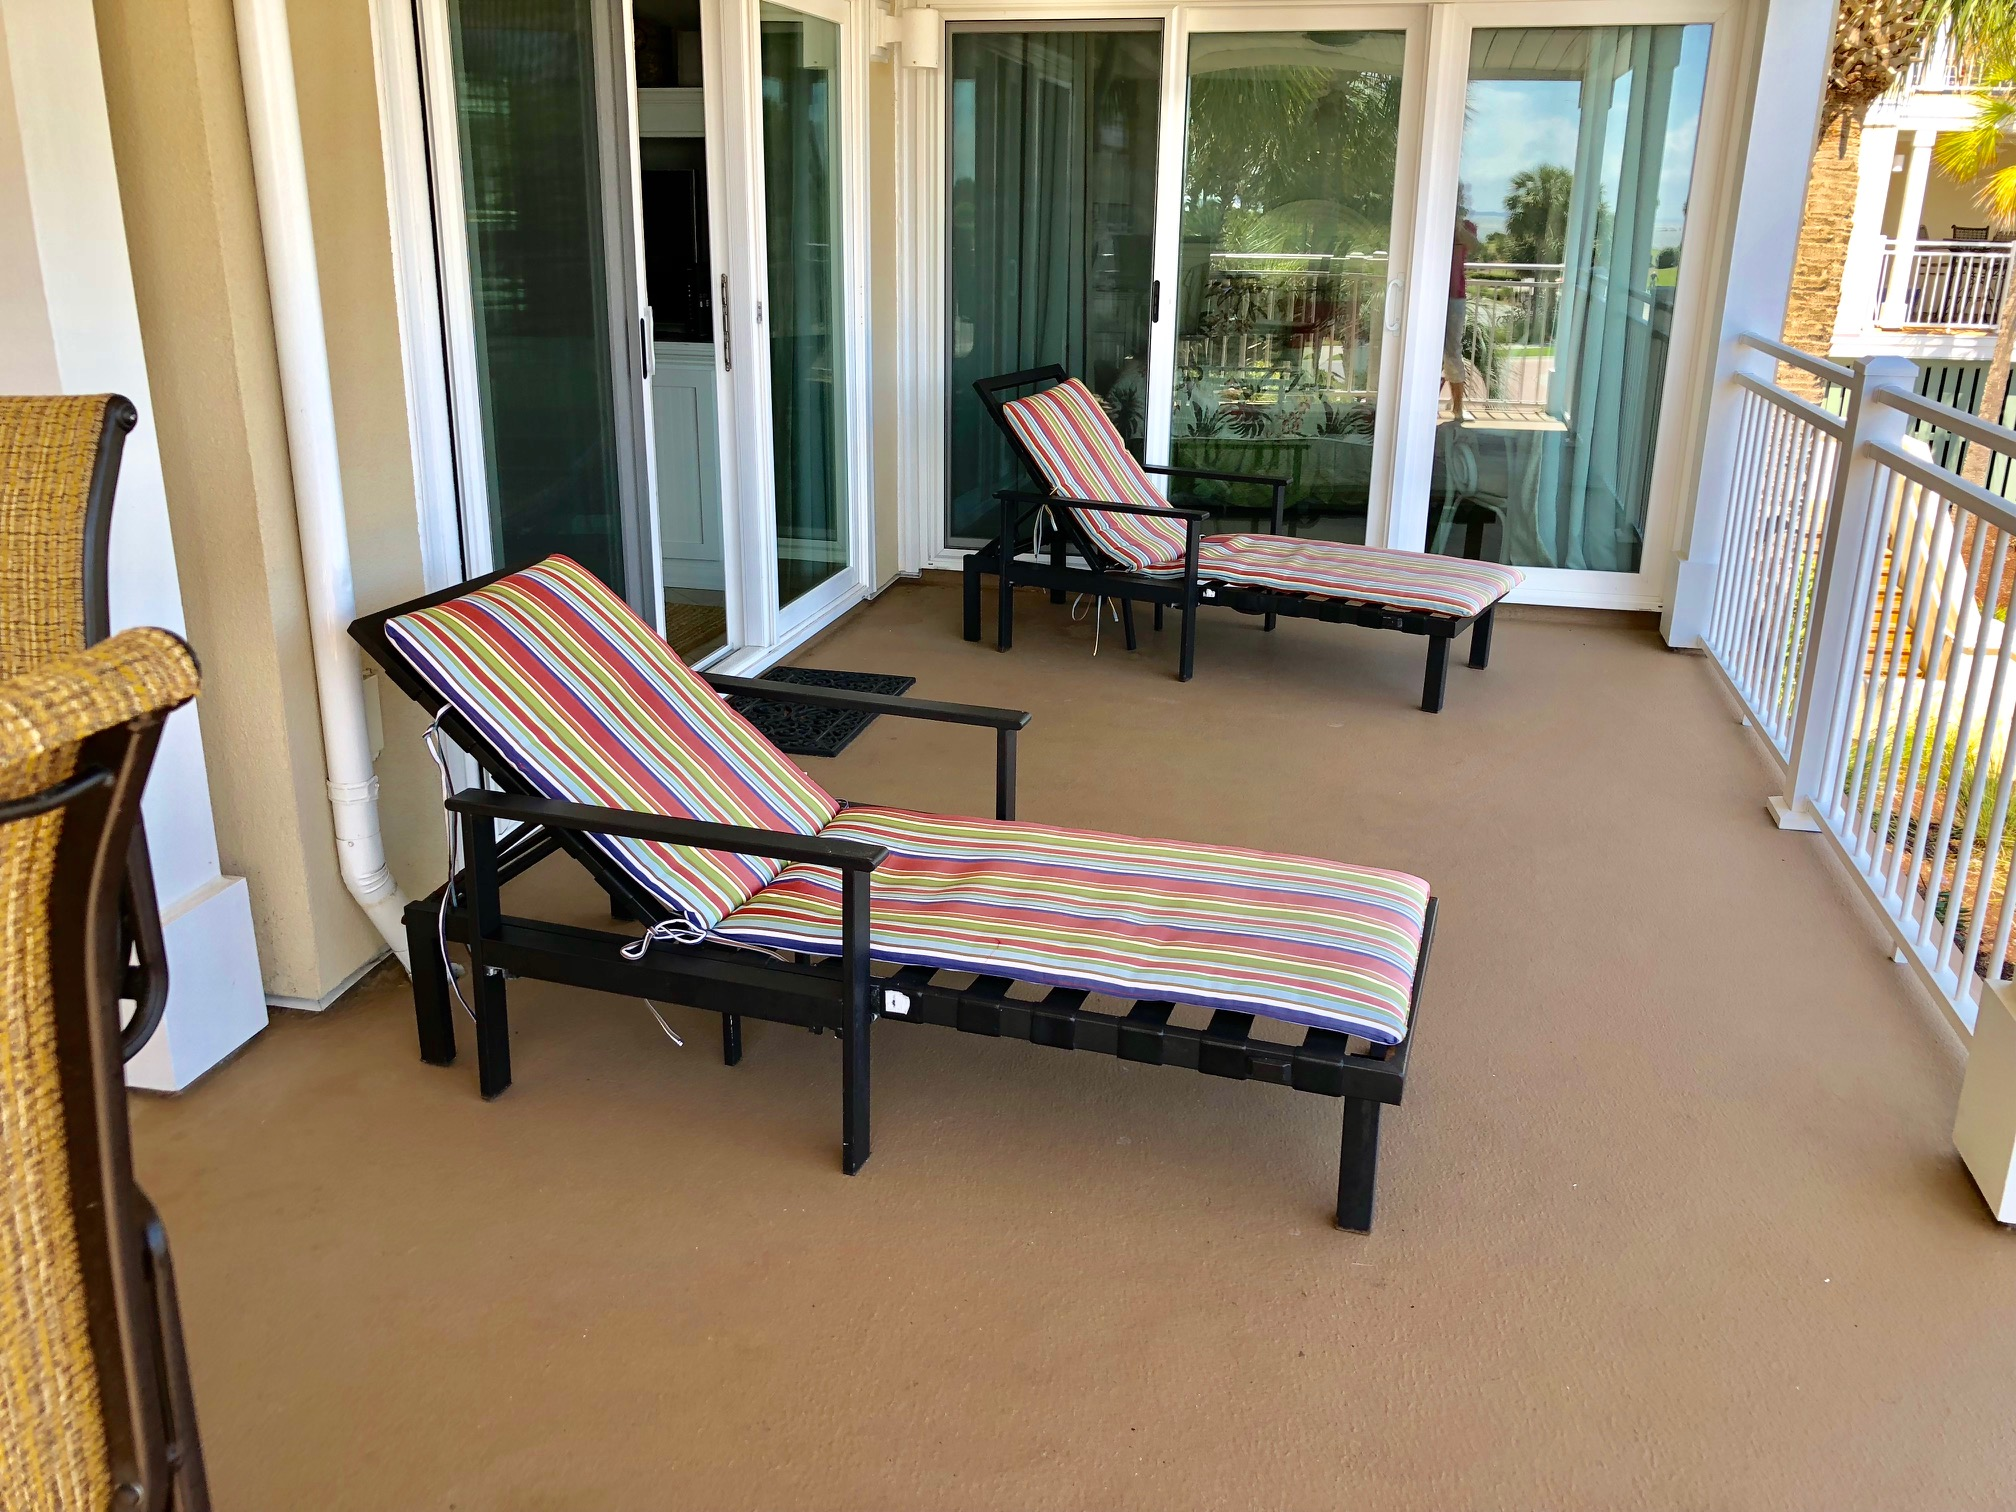 Spacious deck with chaise lounges and high top table to enjoy the view.